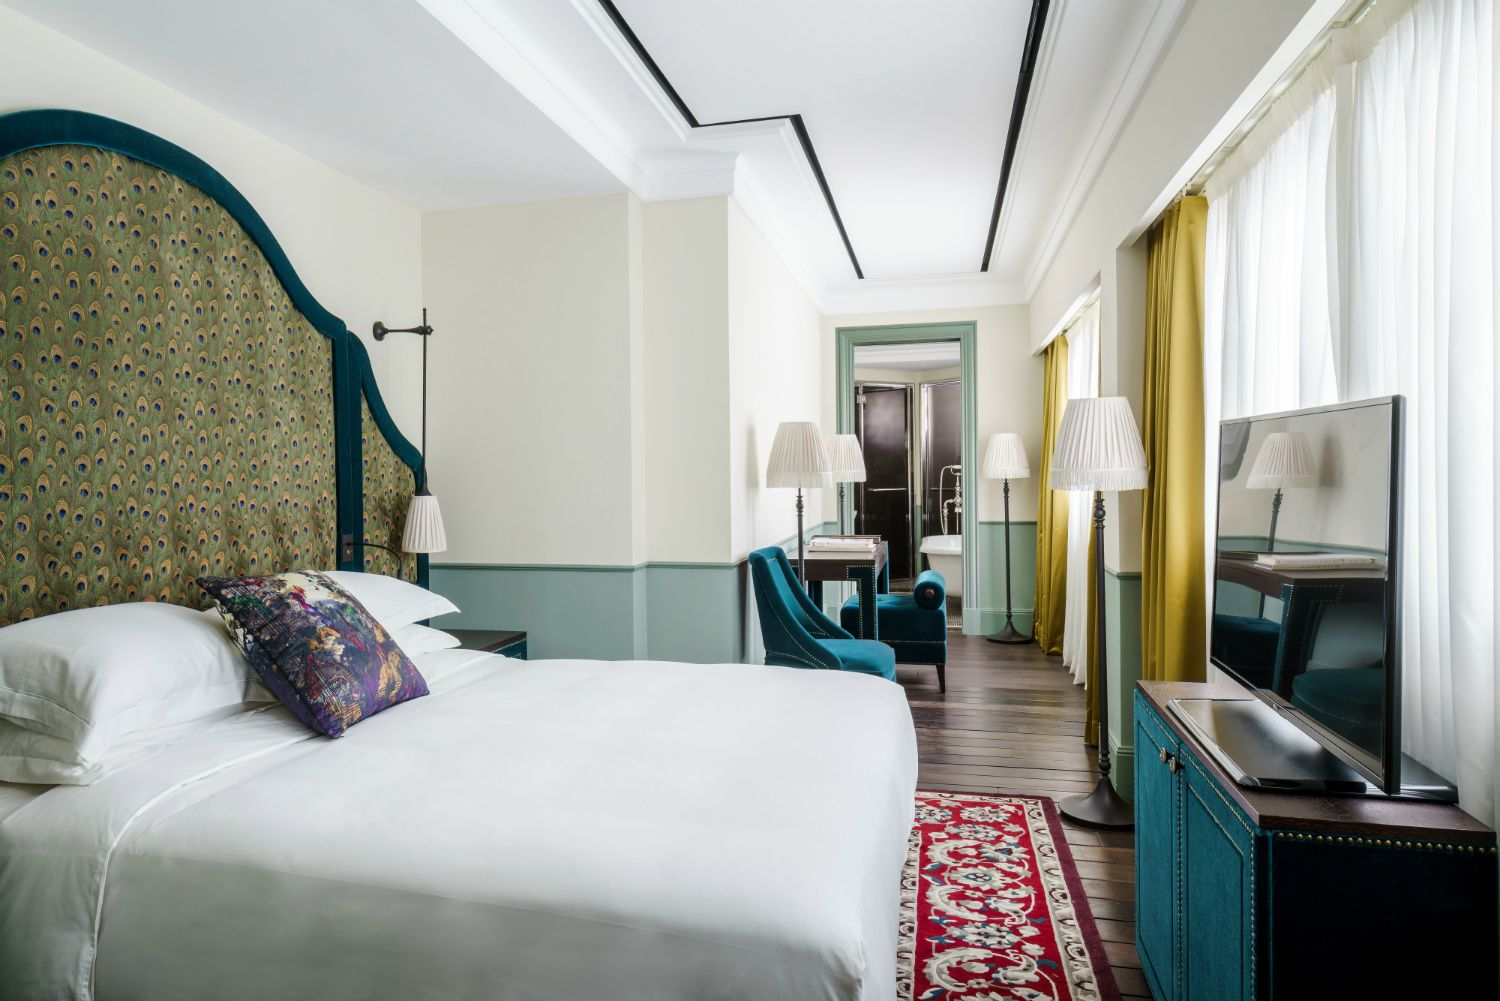 5 New And Upcoming Hotel Openings In Singapore